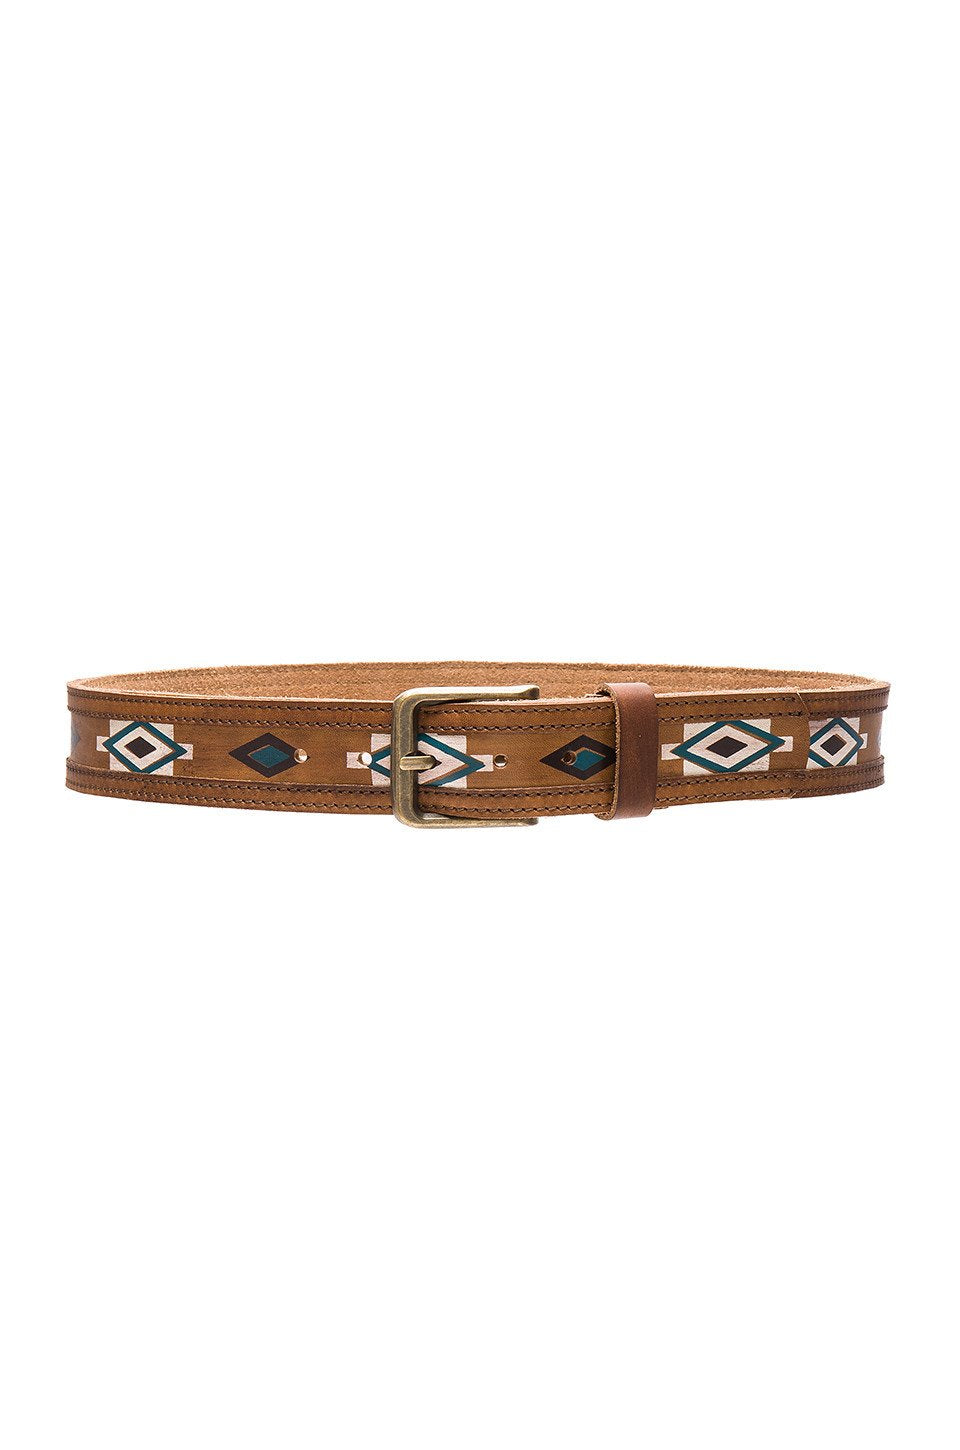 Nomad Belt - Kustom Label - 1